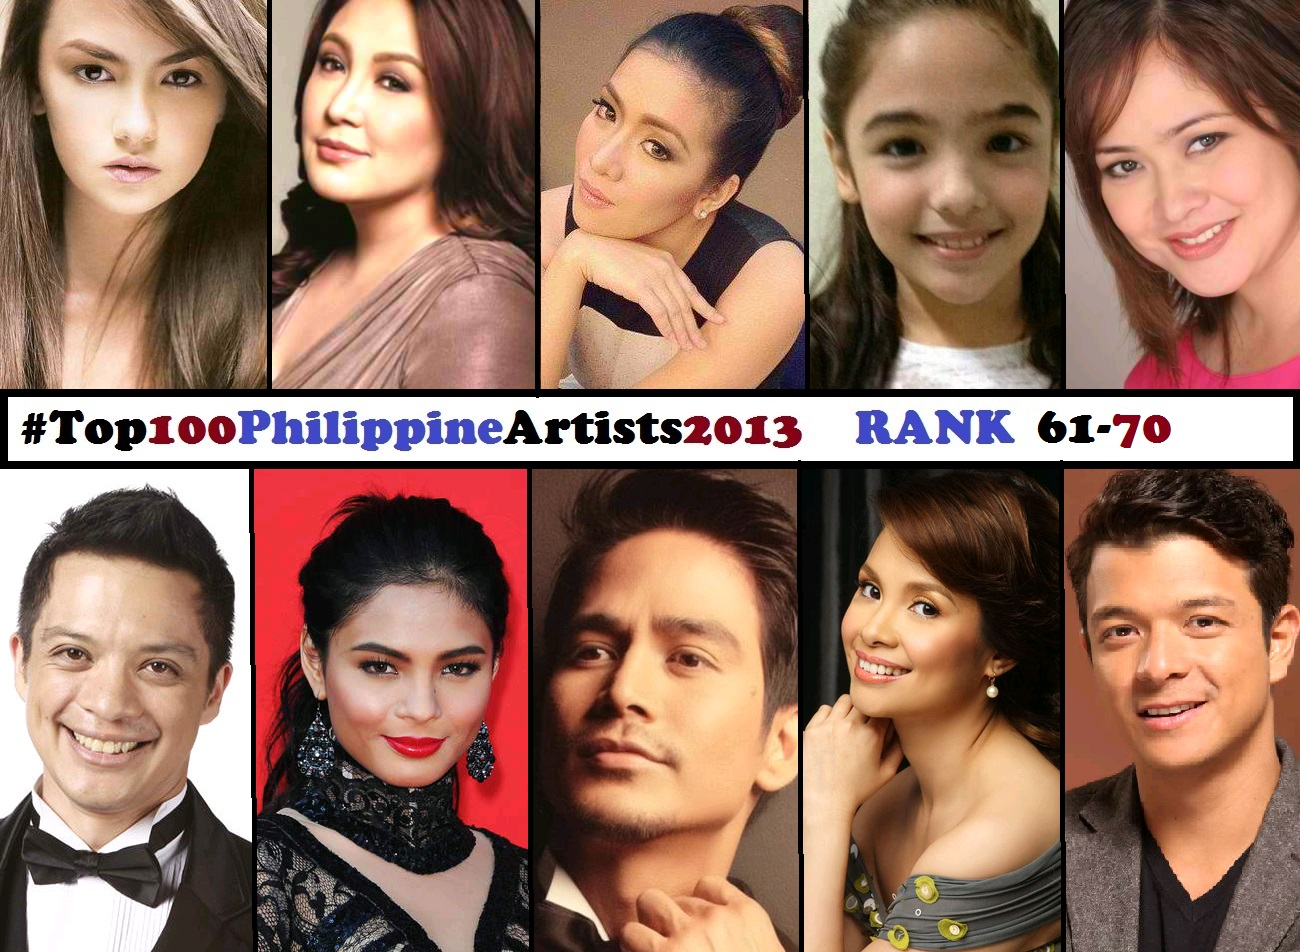 Angeline Quinto Sex Scandal top 100 philippine artists for 2013 [rank 61-70